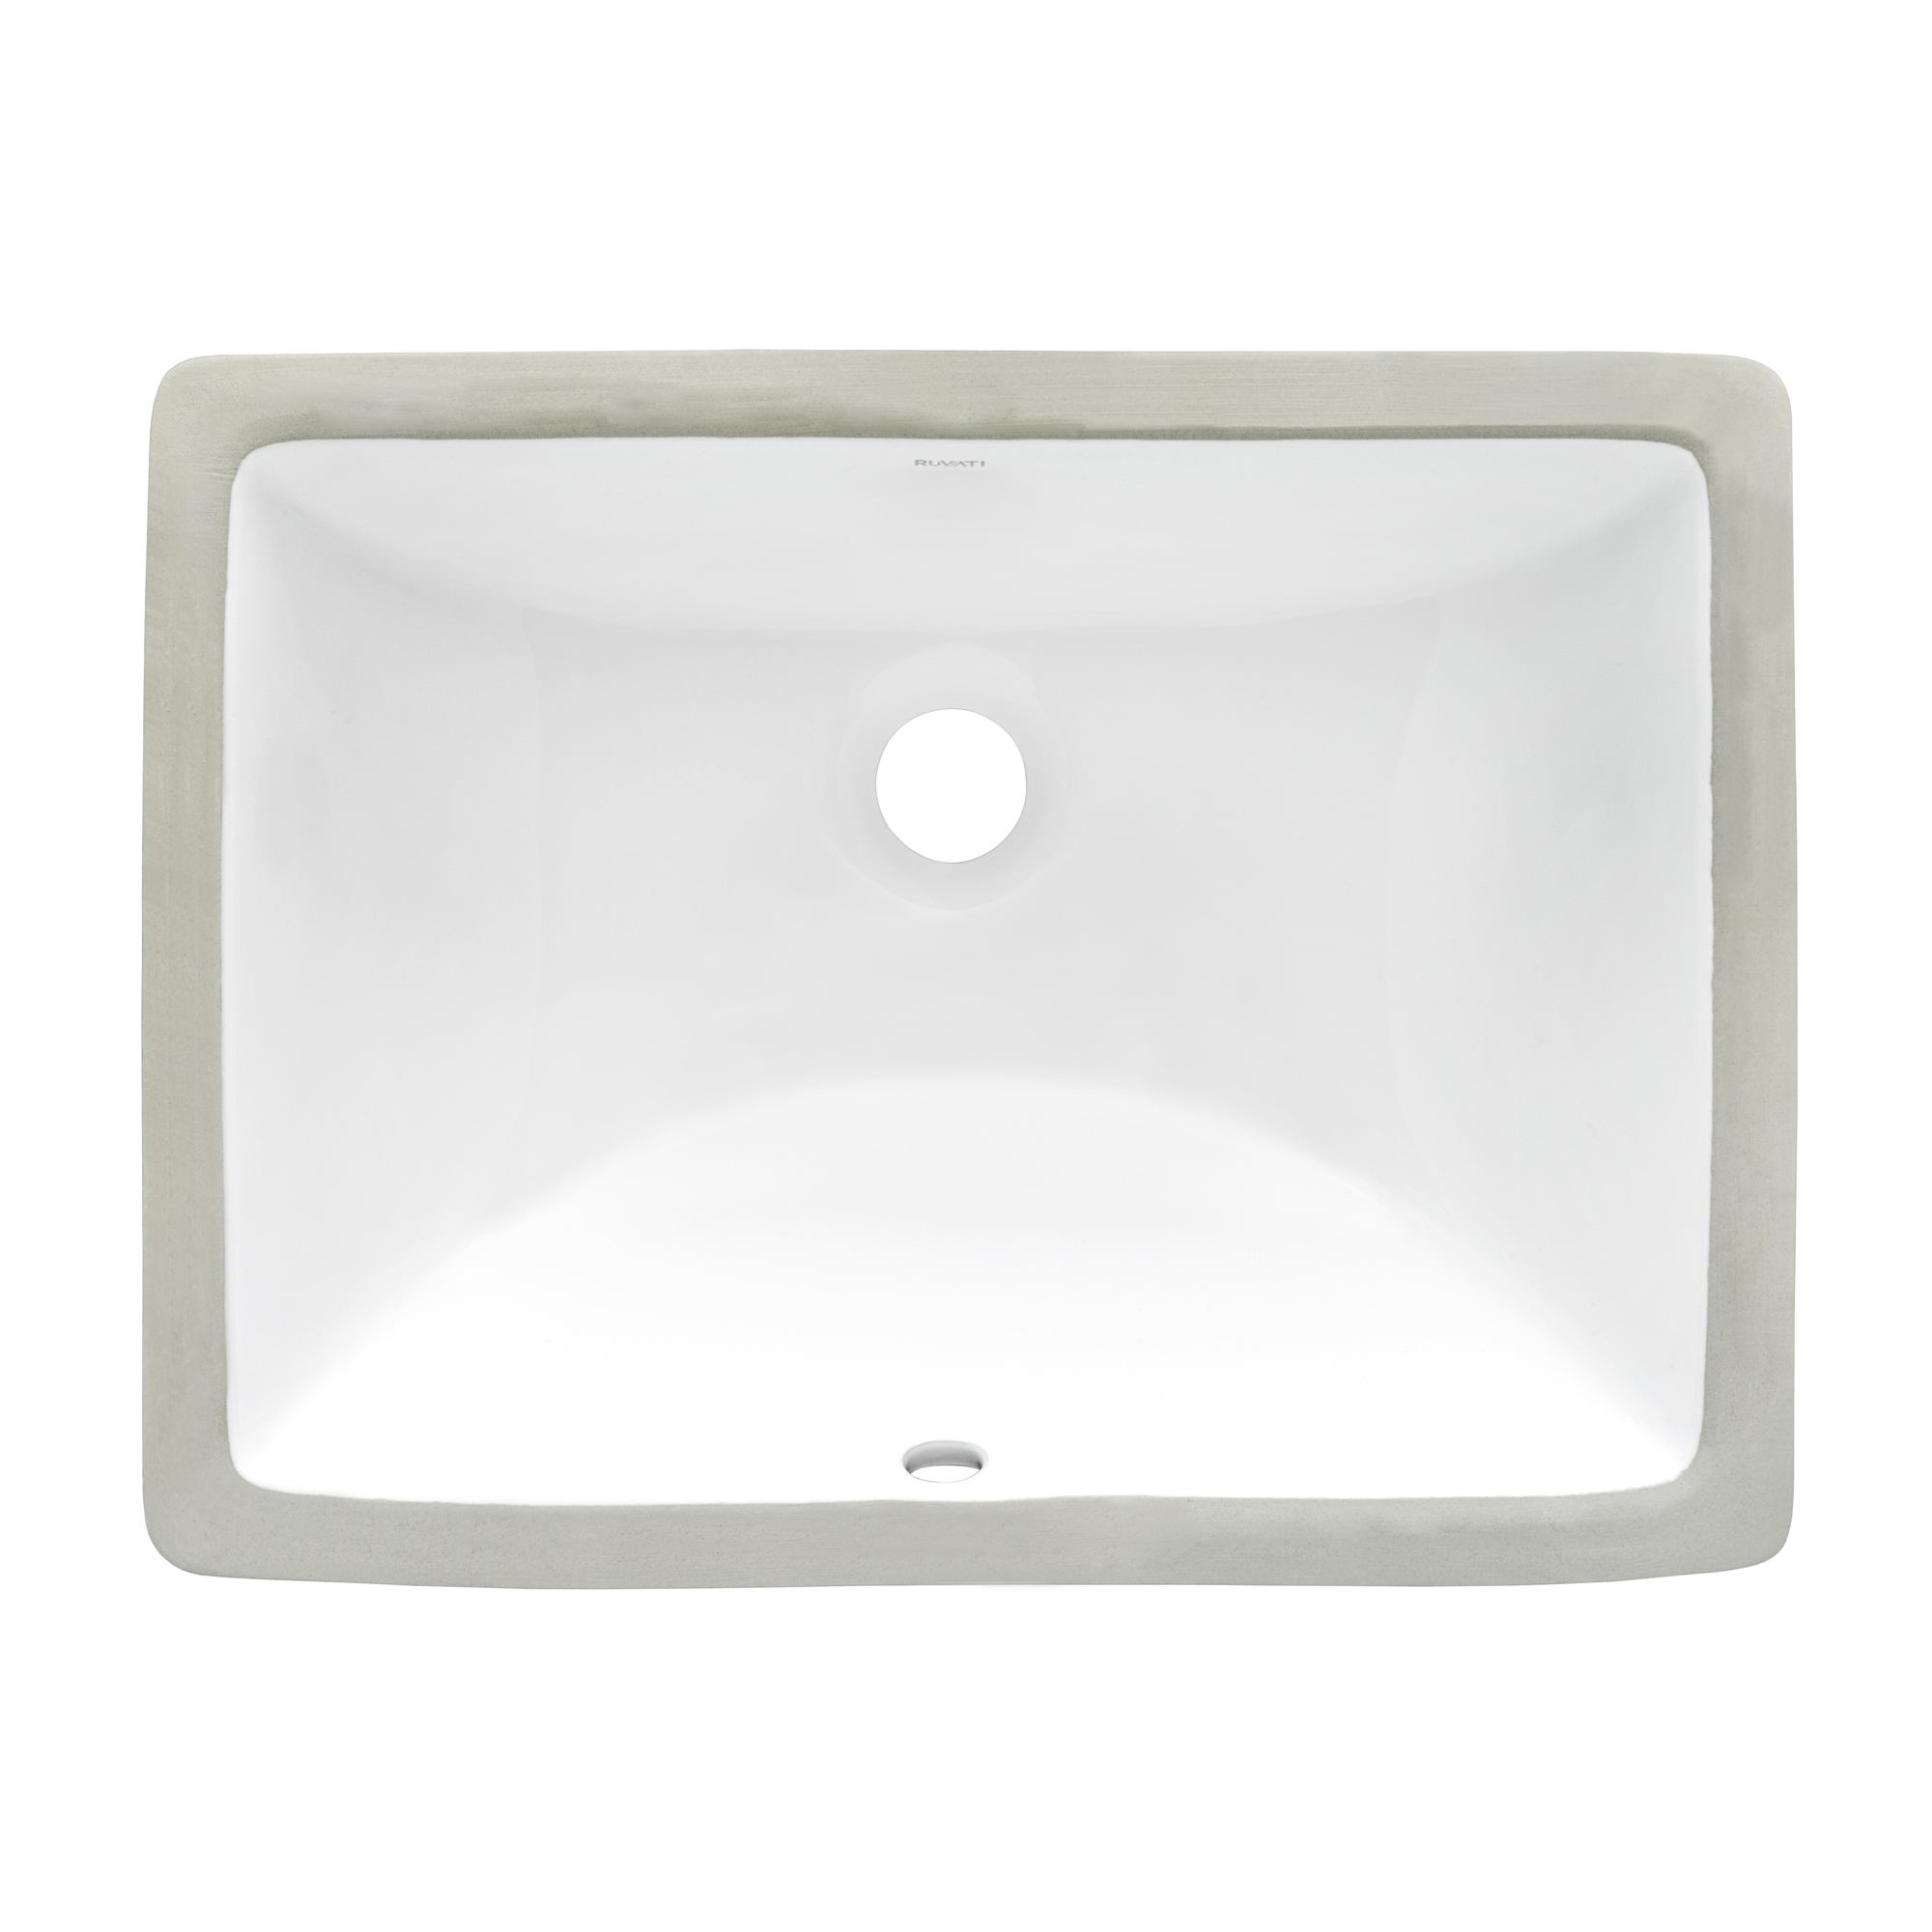 6 x 6 inch Undermount Bathroom Vanity Sink White Rectangular